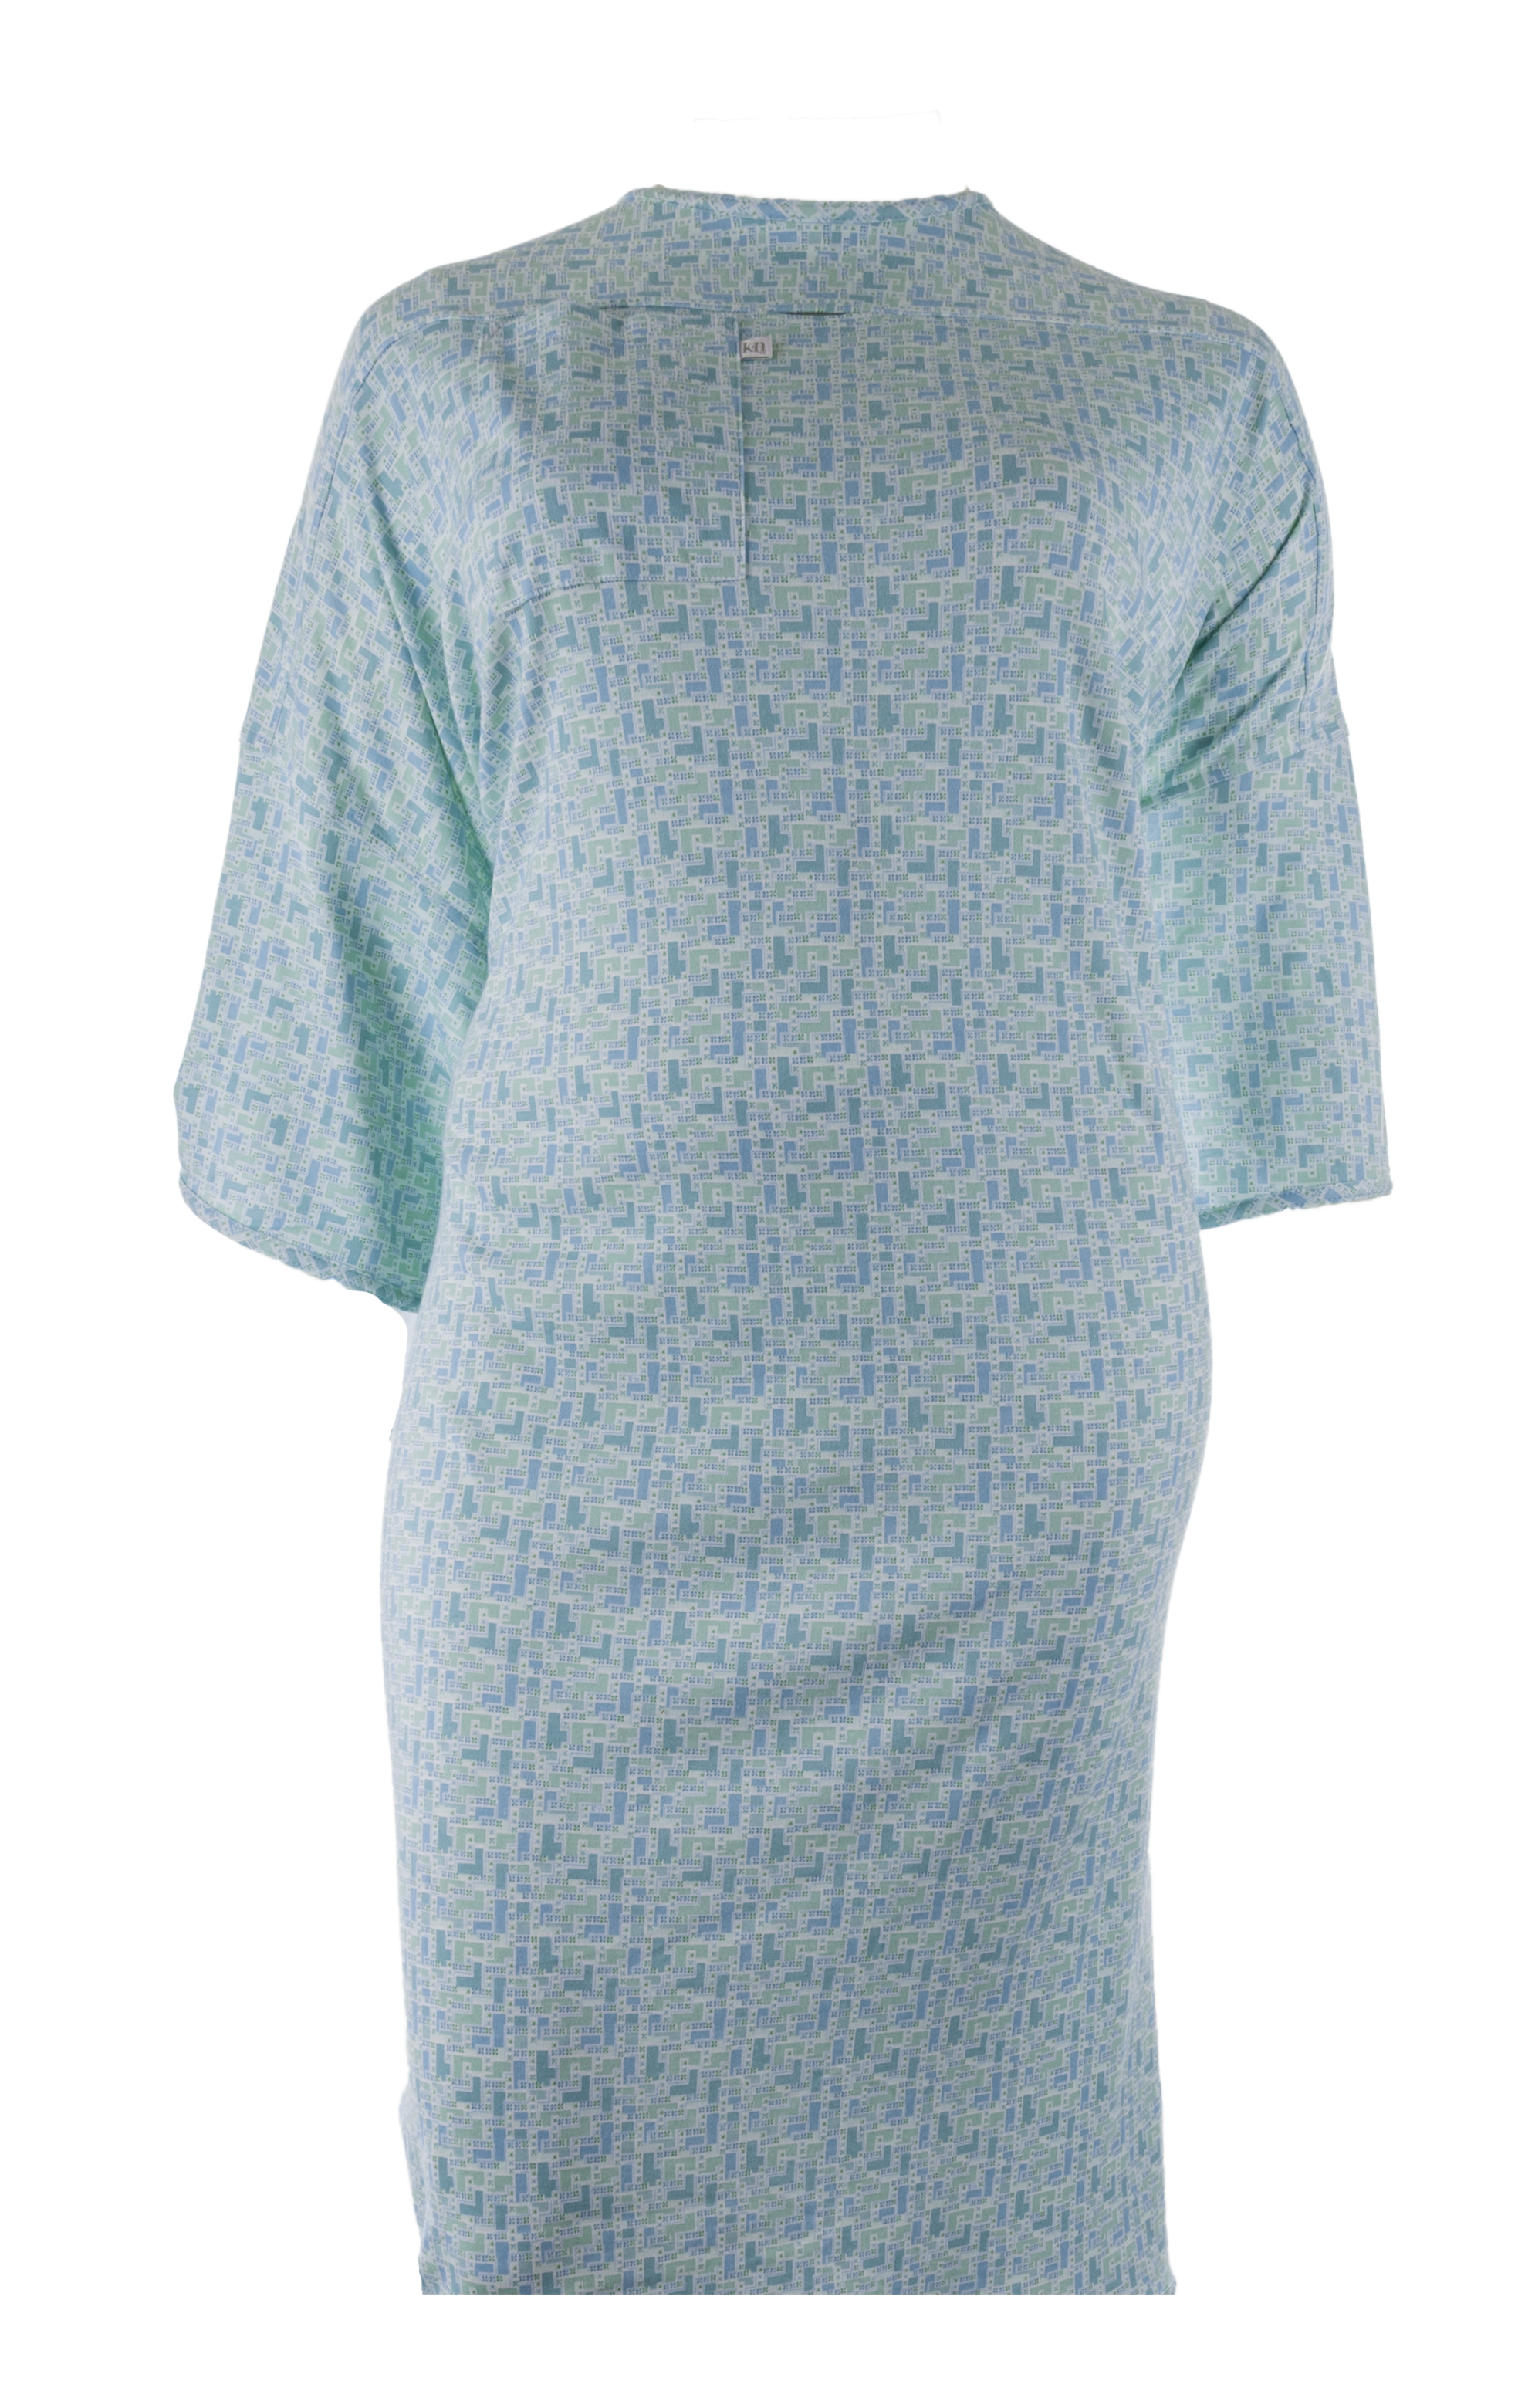 Wholesale Hospital Gowns - Regular Gowns